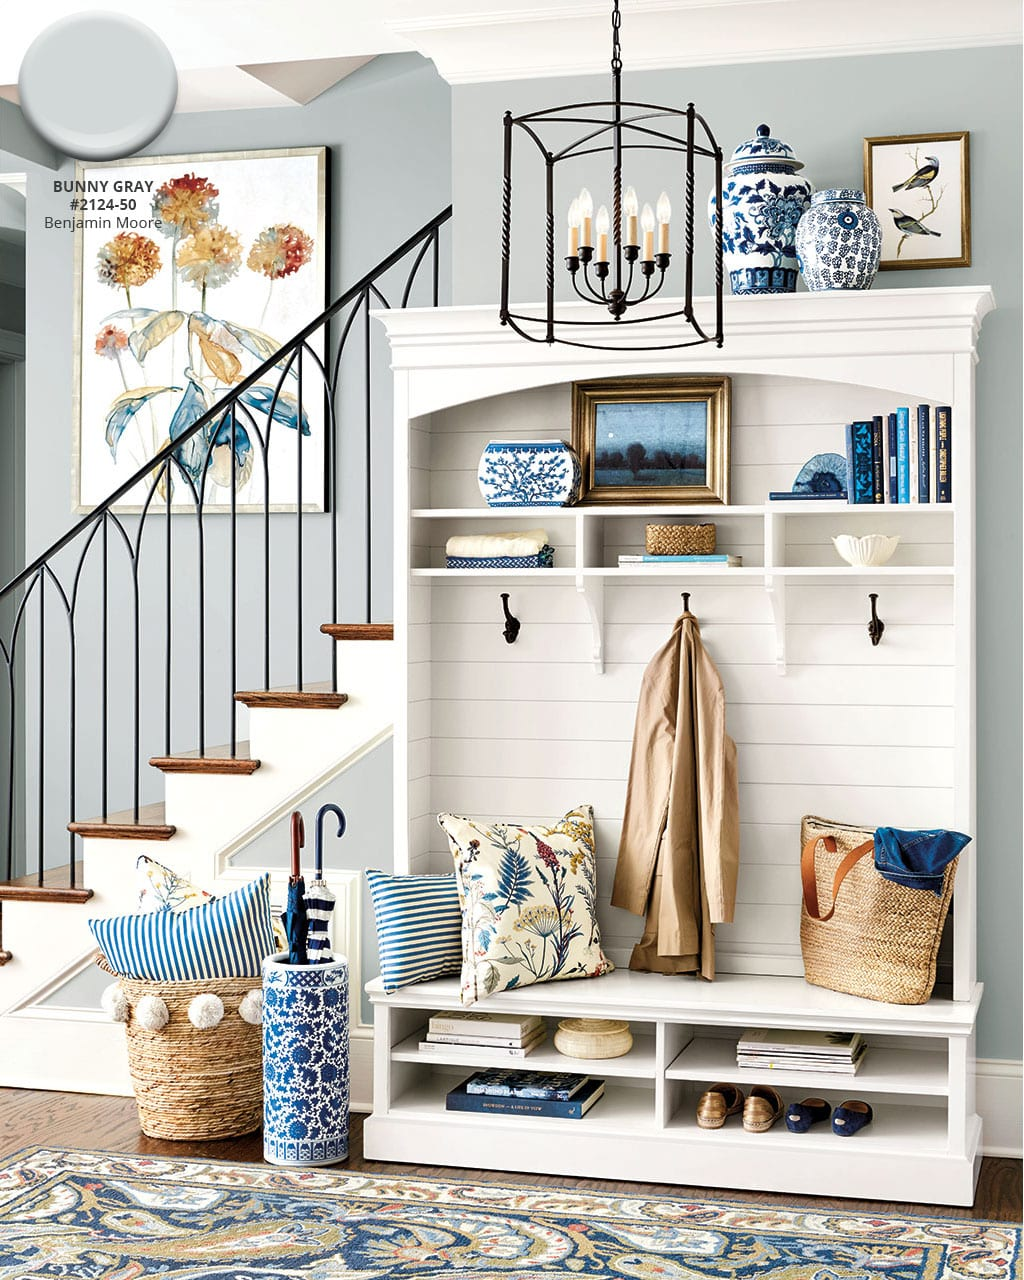 living room wall colors 2018 design tips ballard designs spring paint how to decorate benjamin moore s bunny gray color in entryway from catalog